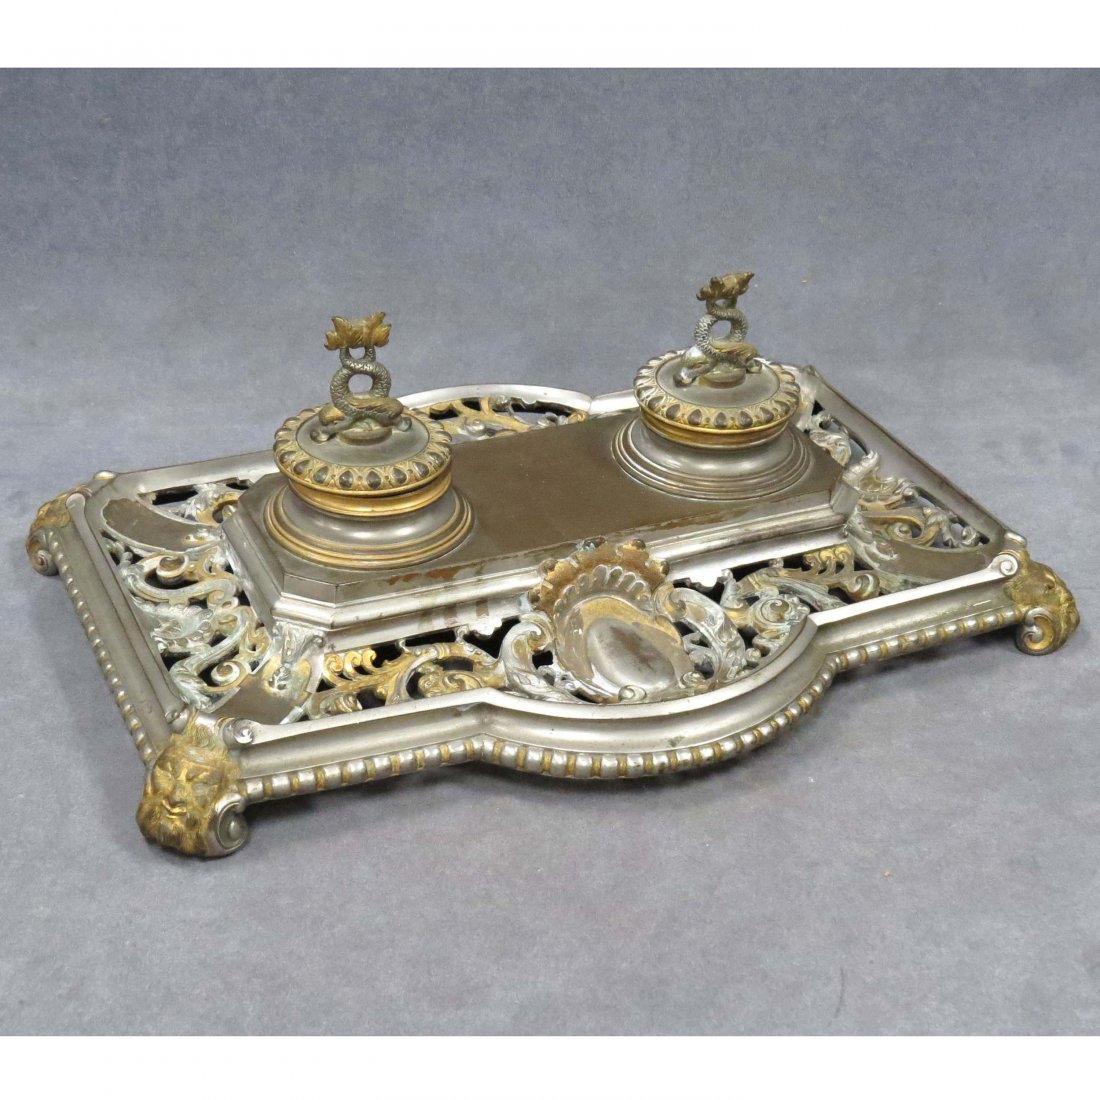 FRENCH EMPIRE STYLE SILVERED BRONZE INKWELL